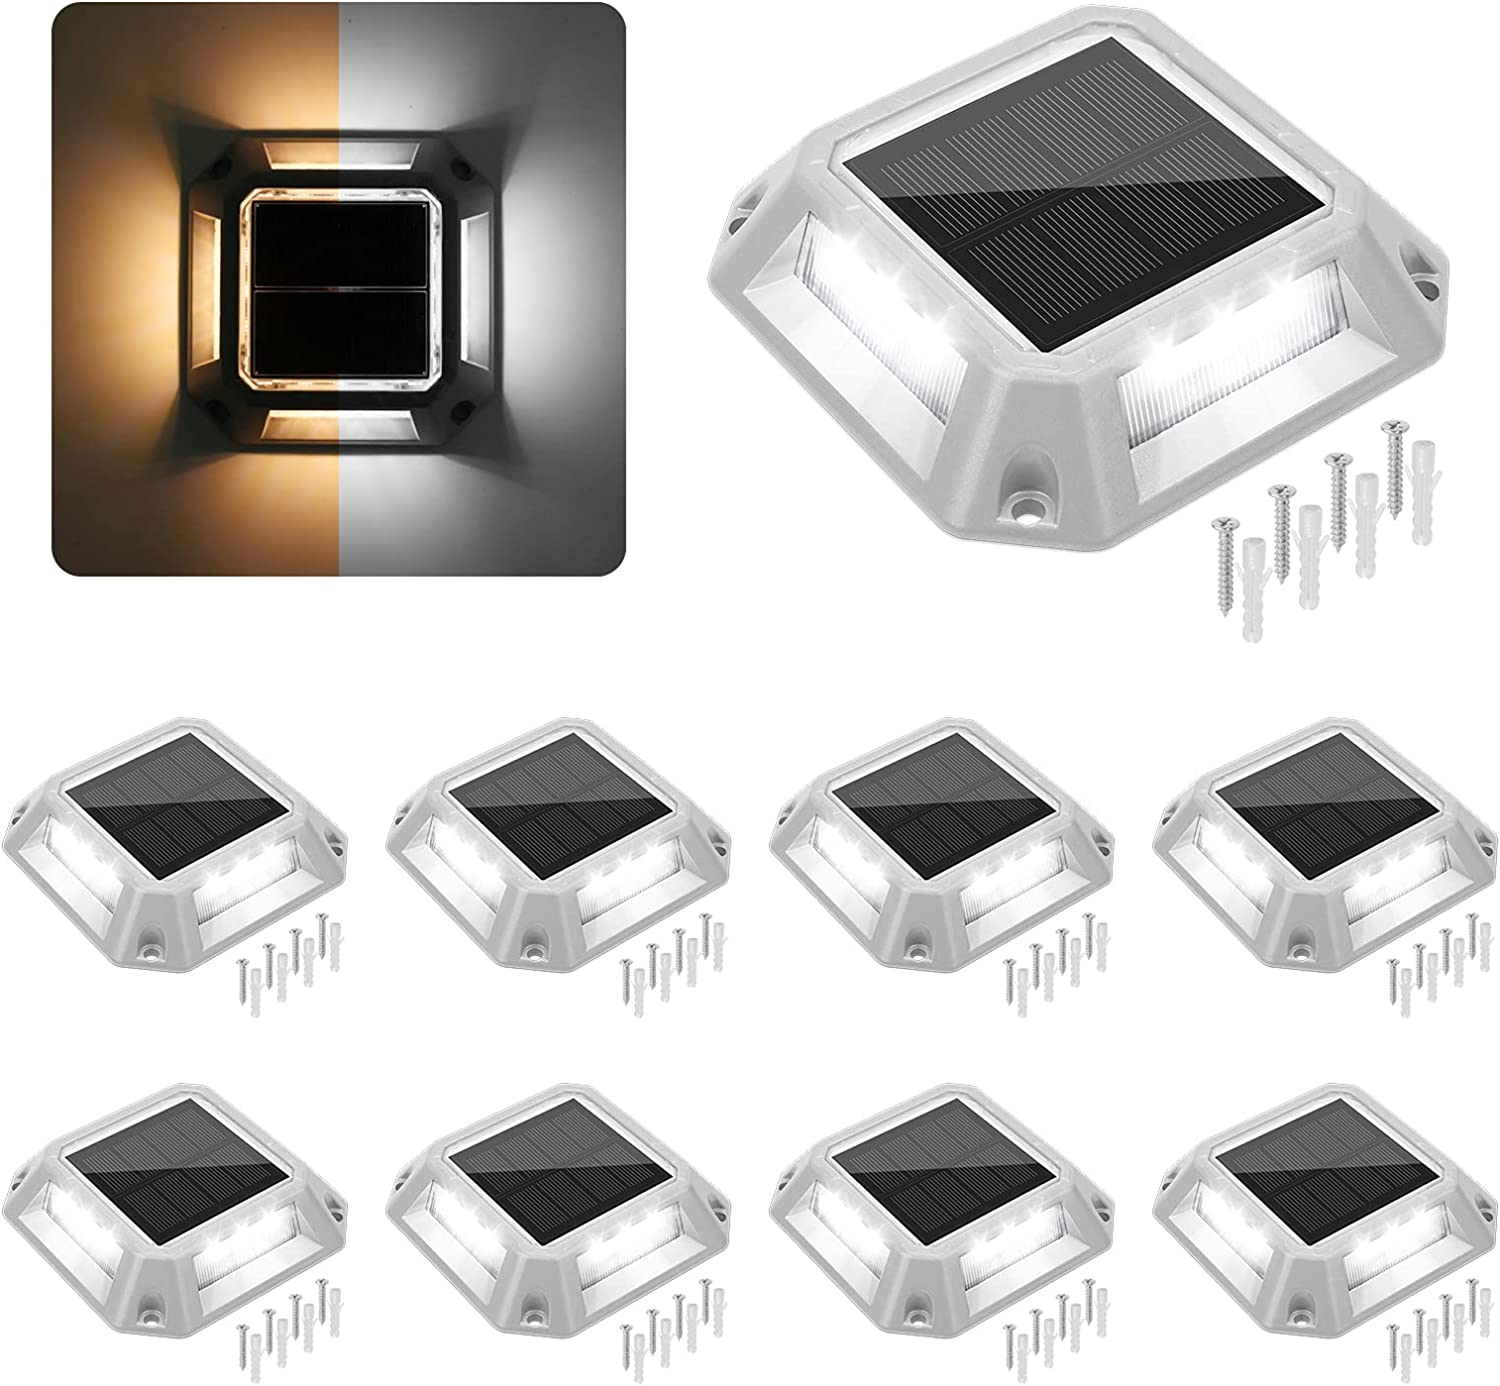 VOLISUN Solar Driveway Lights Dock Deck Light 8-Pack,2 Colors in 1,Wireless Solar Powered 1200mAh Battery,Waterproof Outdoor Warning Step Light for Driveway (2 Colors Lighting,White/Warm White) - -